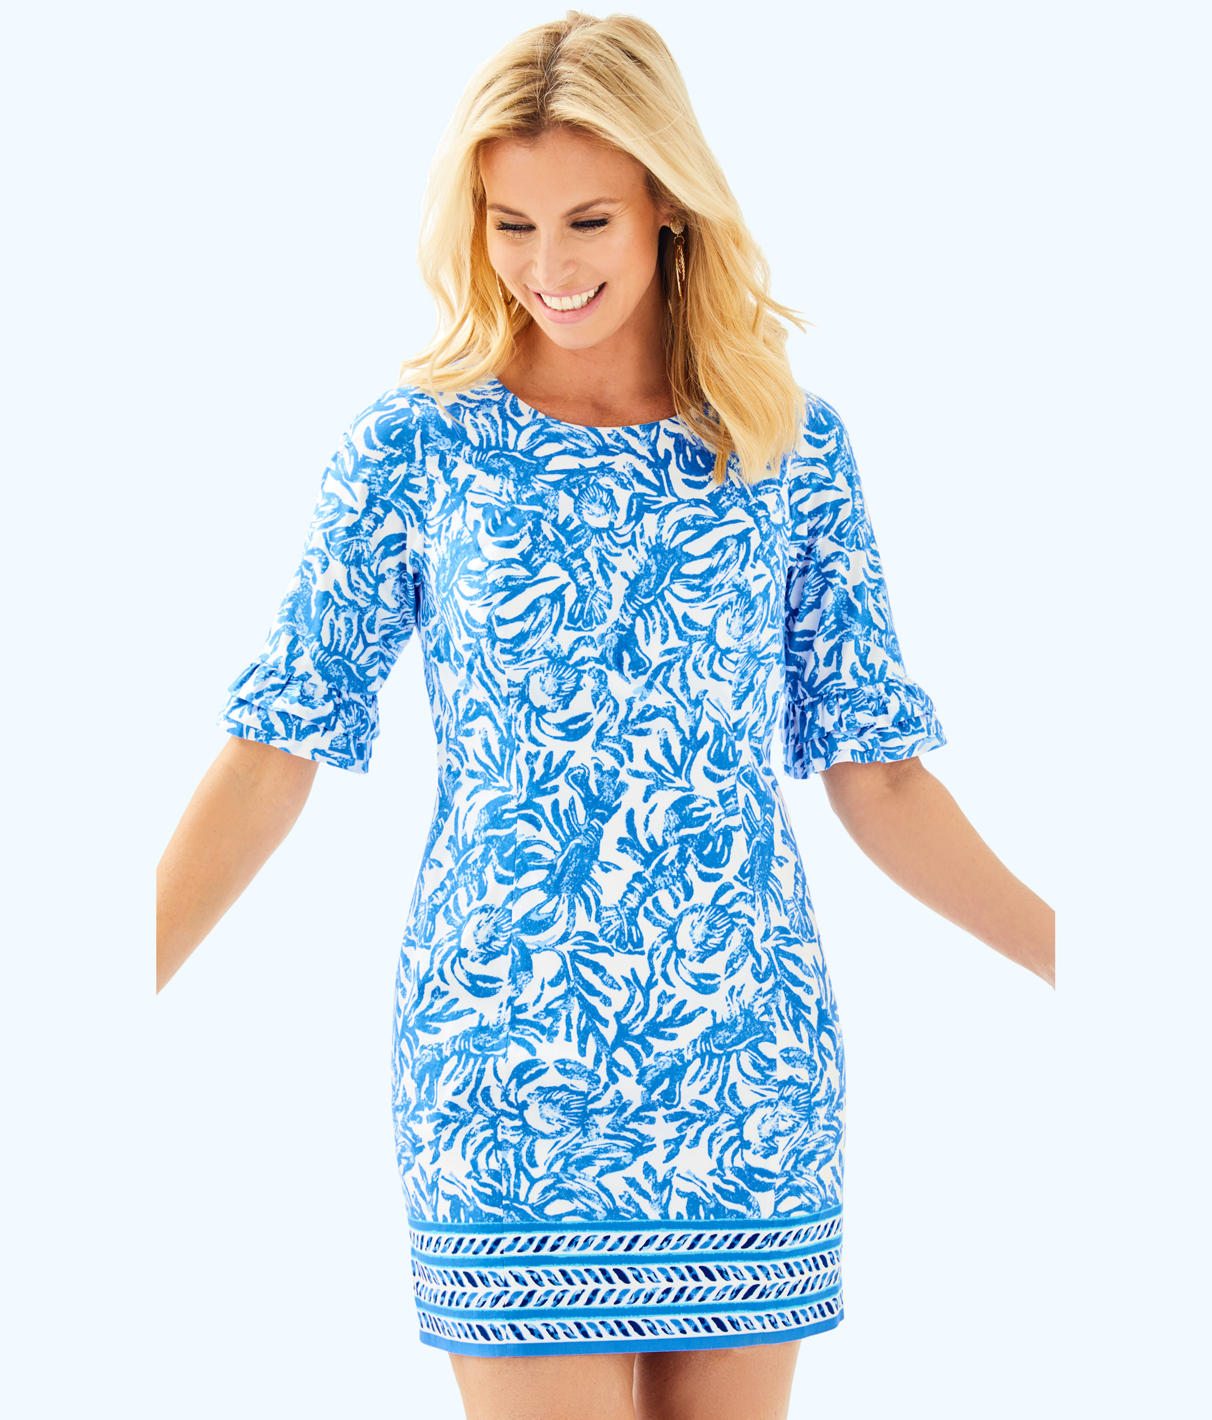 Lilly Pulitzer Lilly Pulitzer Womens Fiesta Stretch Dress